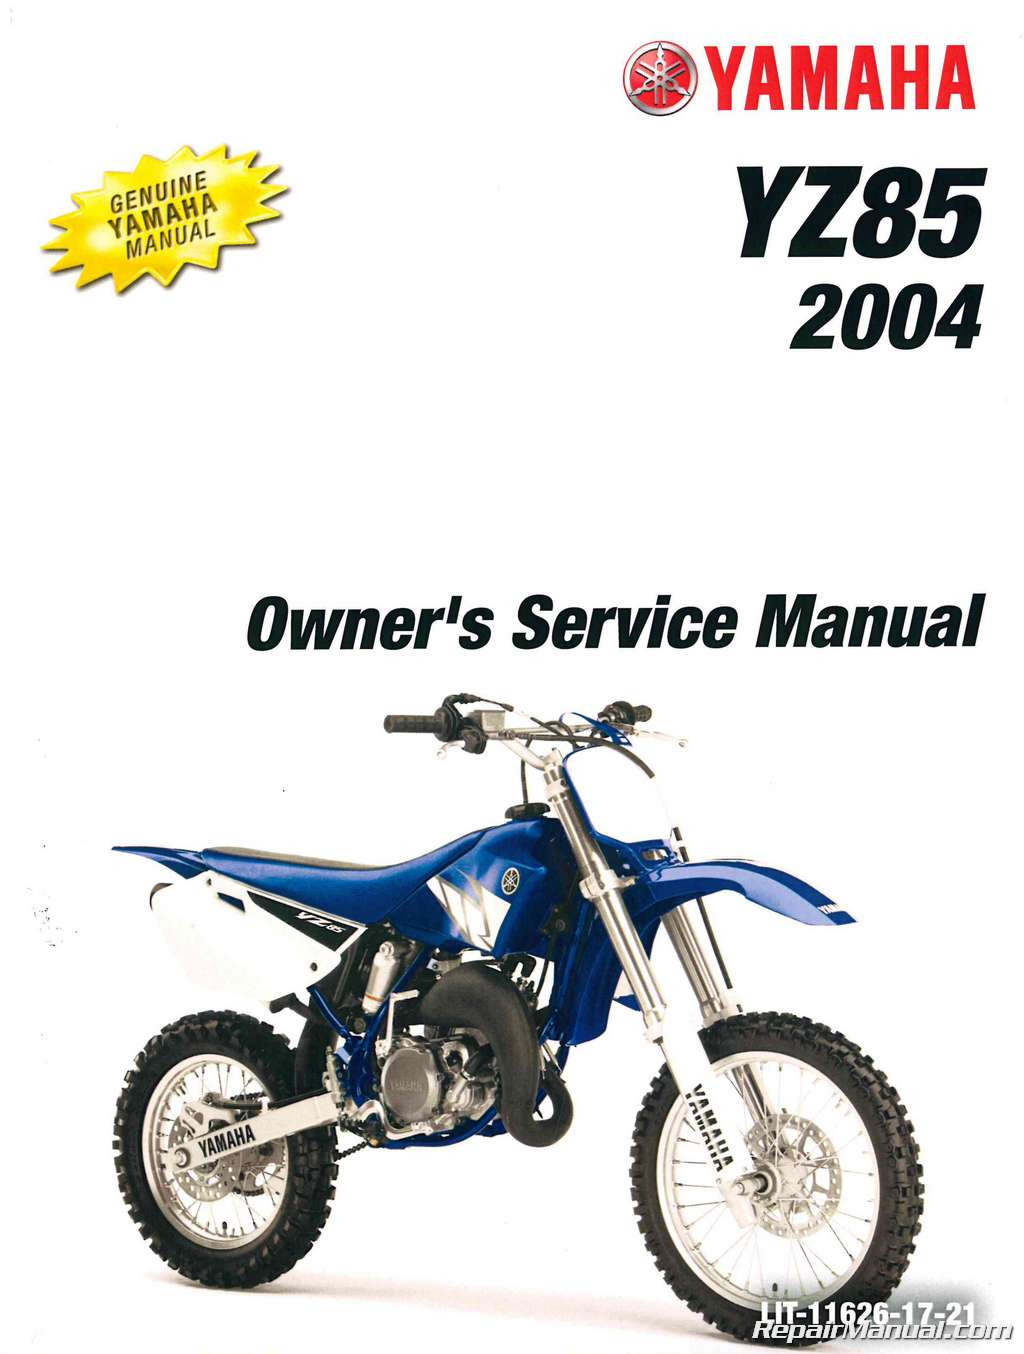 2004 Yamaha Yz85s Motorcycle Owners Service Manual